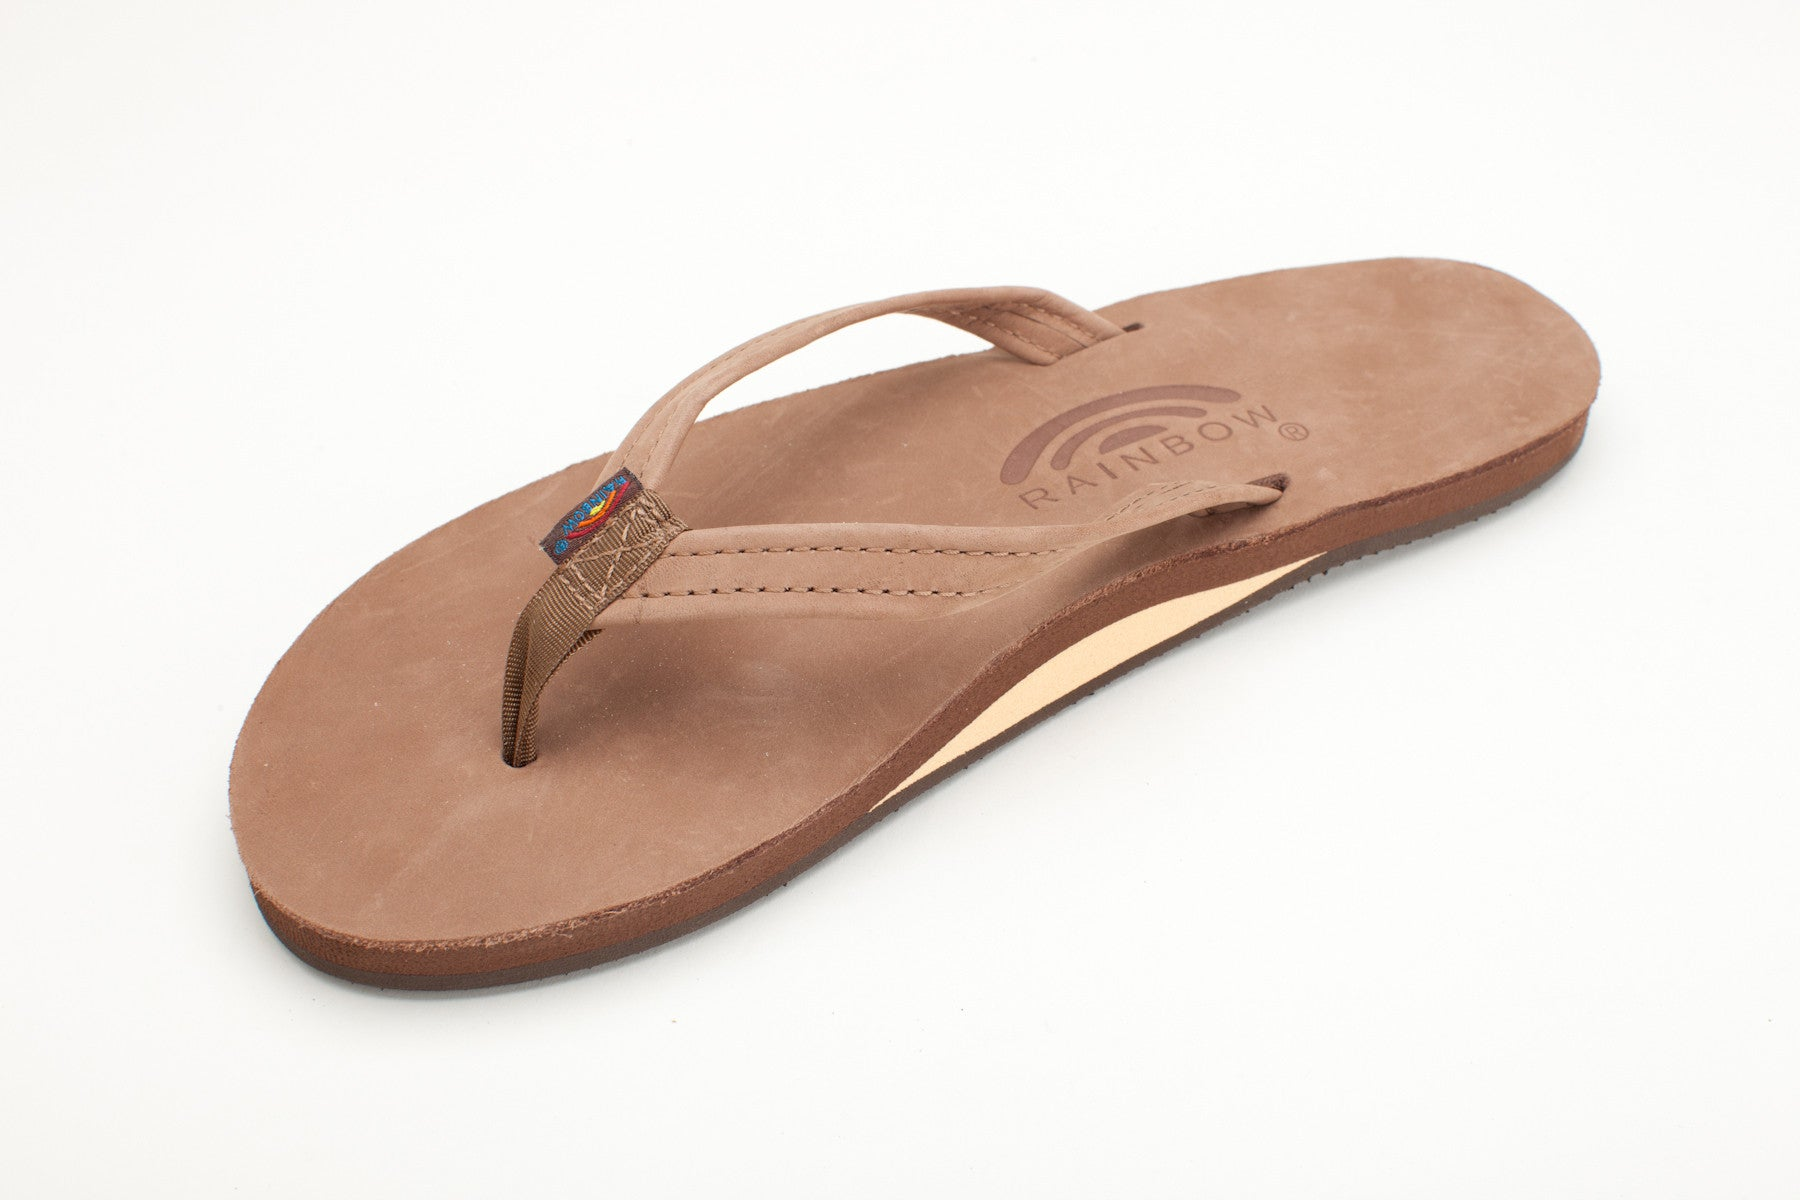 Rainbow Sandals Womens Dark Brown Premier Leather Single Layer with Arch Support and a Narrow Strap